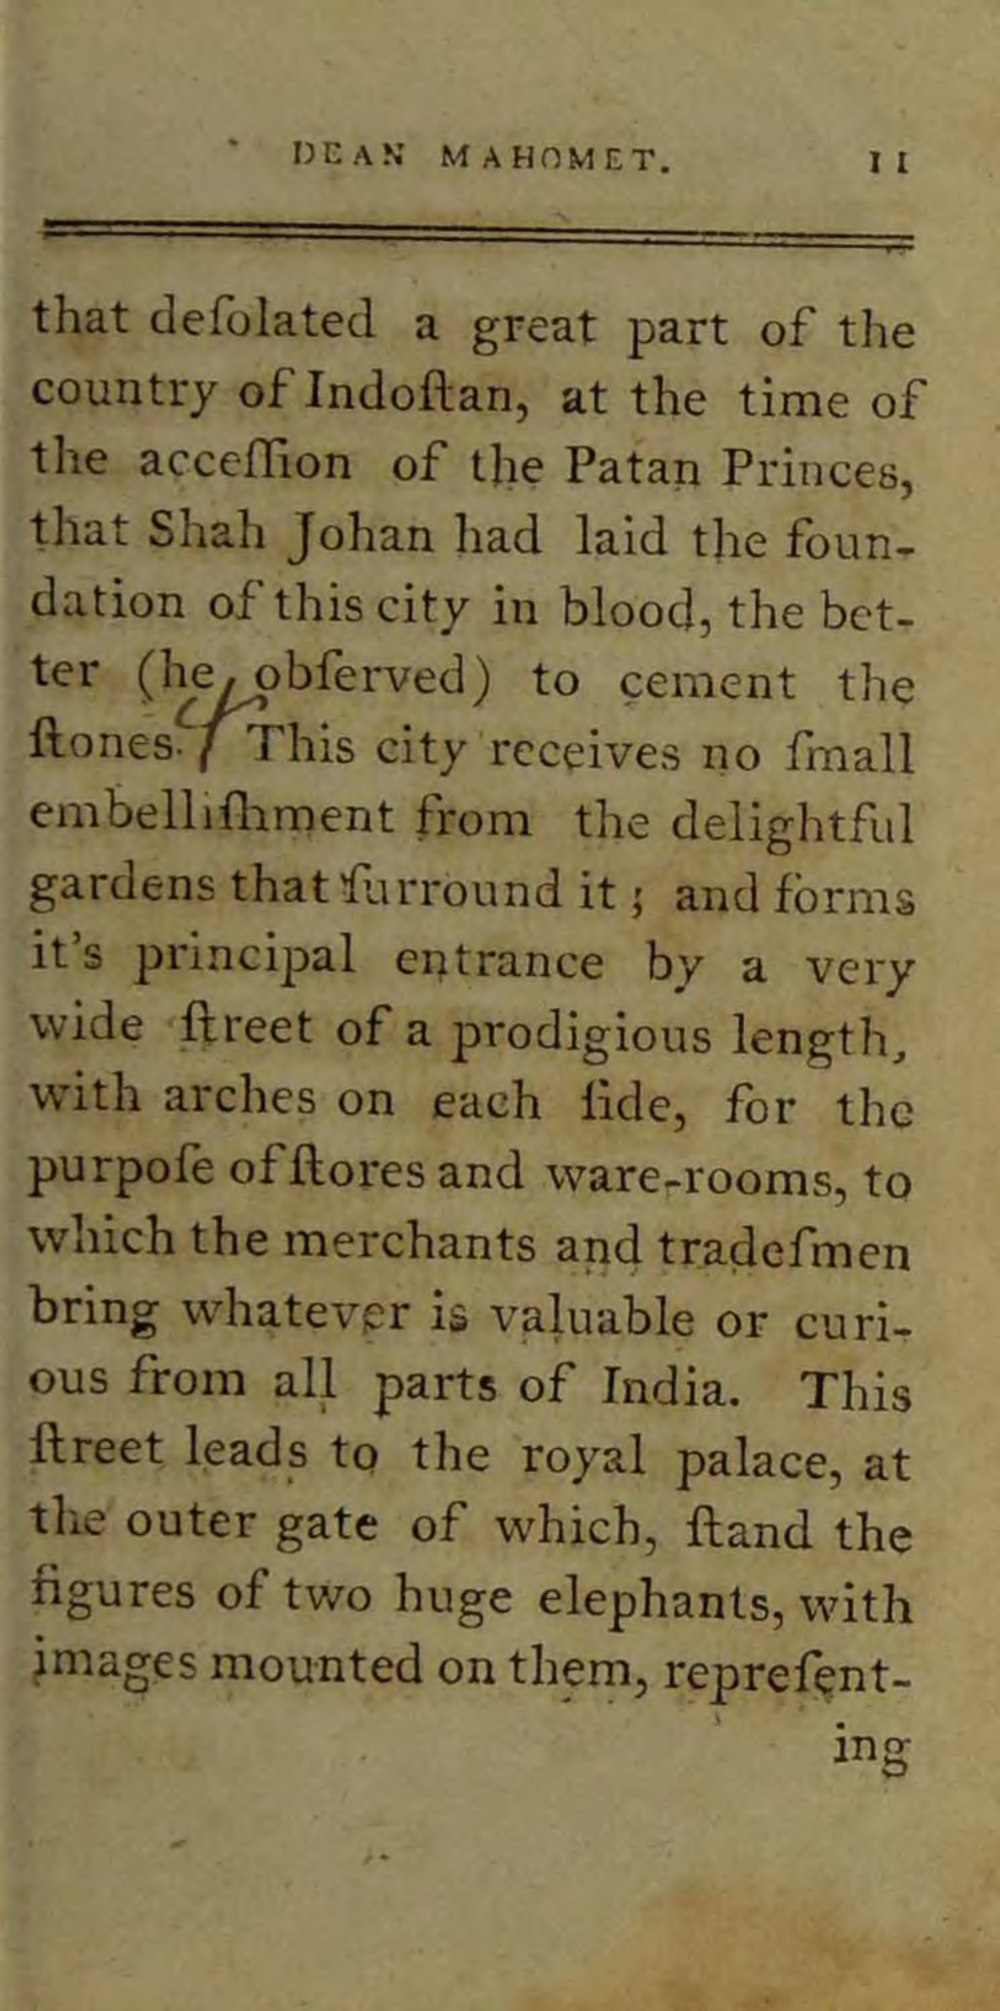 travels of dean mahomet The first book written by an indian in english was travels of dean mahomet, a travel narrative by sake dean mahomet published in england in 1793 in its early stages, iel was influenced by the western novel.